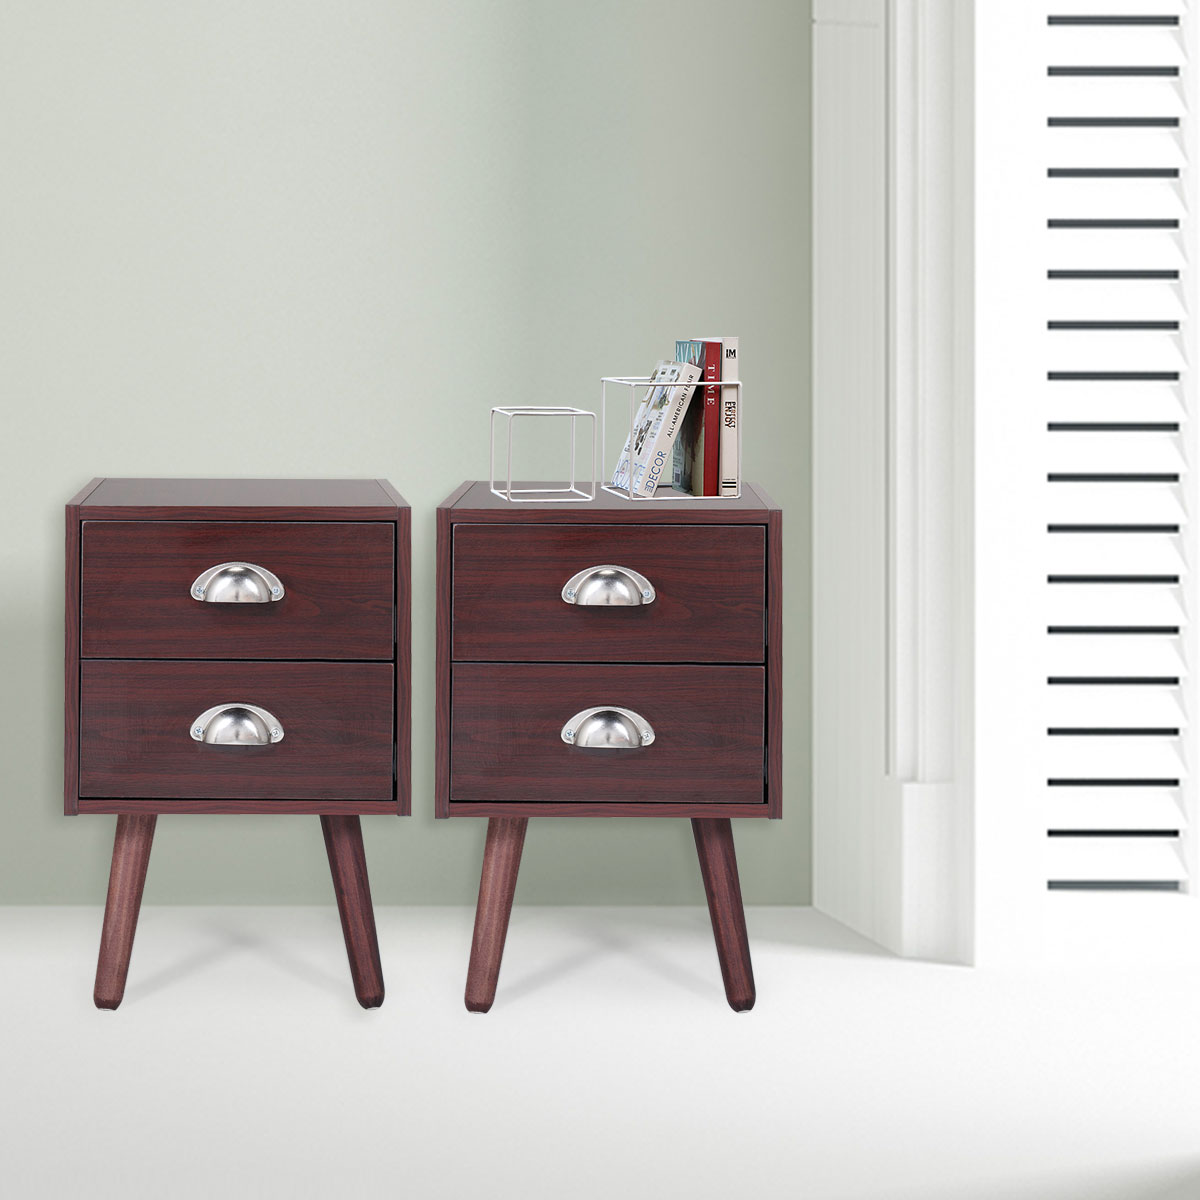 Jaxpety Mid Century Nightstand End Side Table Set Of 2 Bedside Table W 2 Drawer Home Decor Furniture Brown Walmart Com Walmart Com